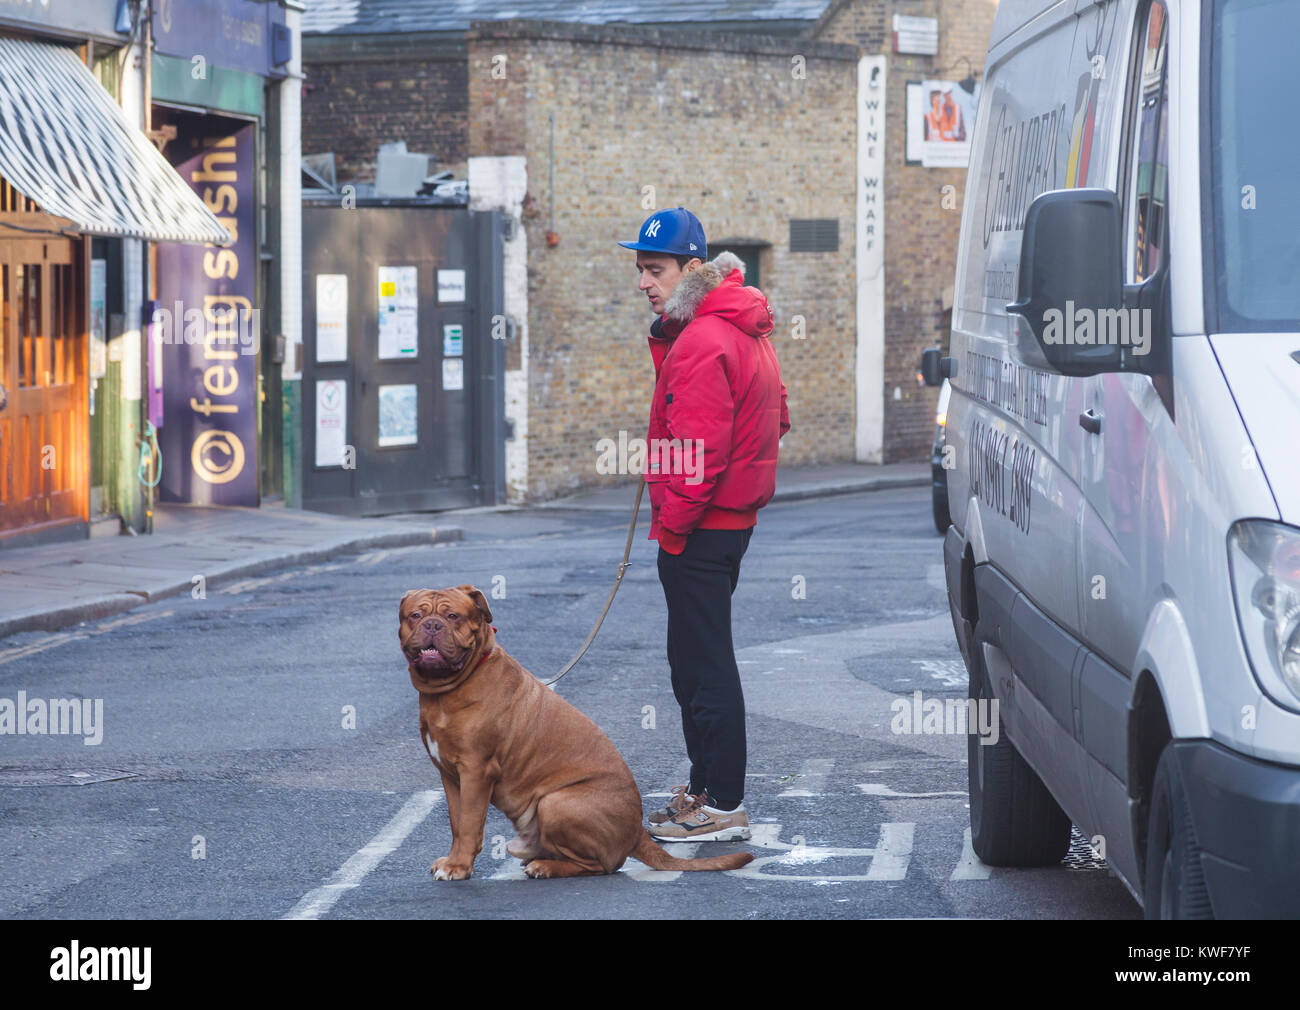 London, Borough of Southwark  One man and his dog in a street adjoining Borough Market - Stock Image